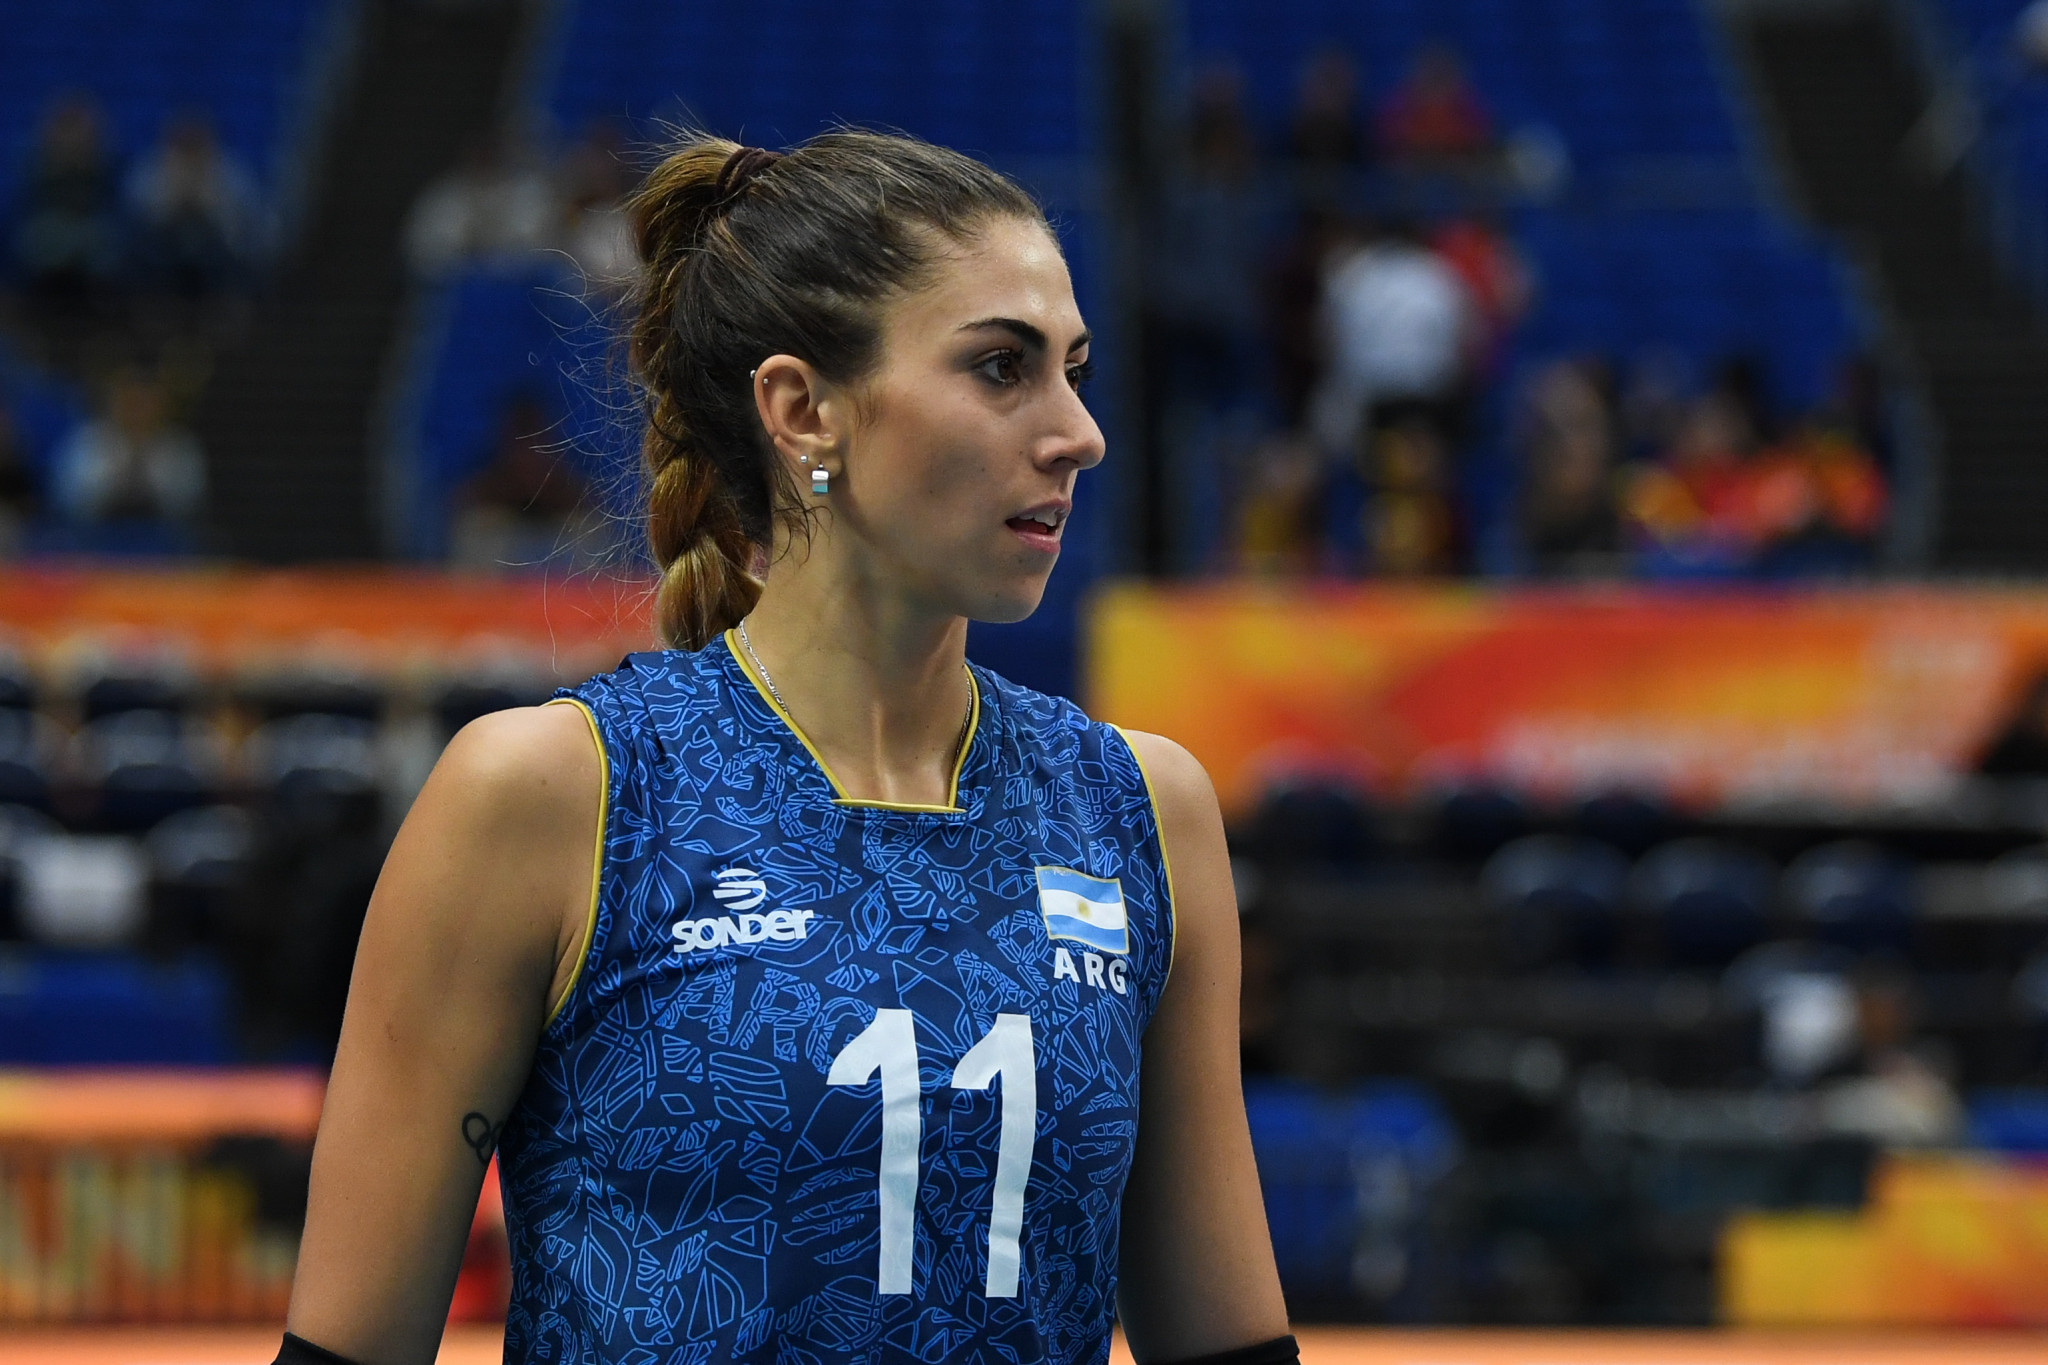 Argentinian volleyball player Lazcano says team will be stronger at Tokyo 2020